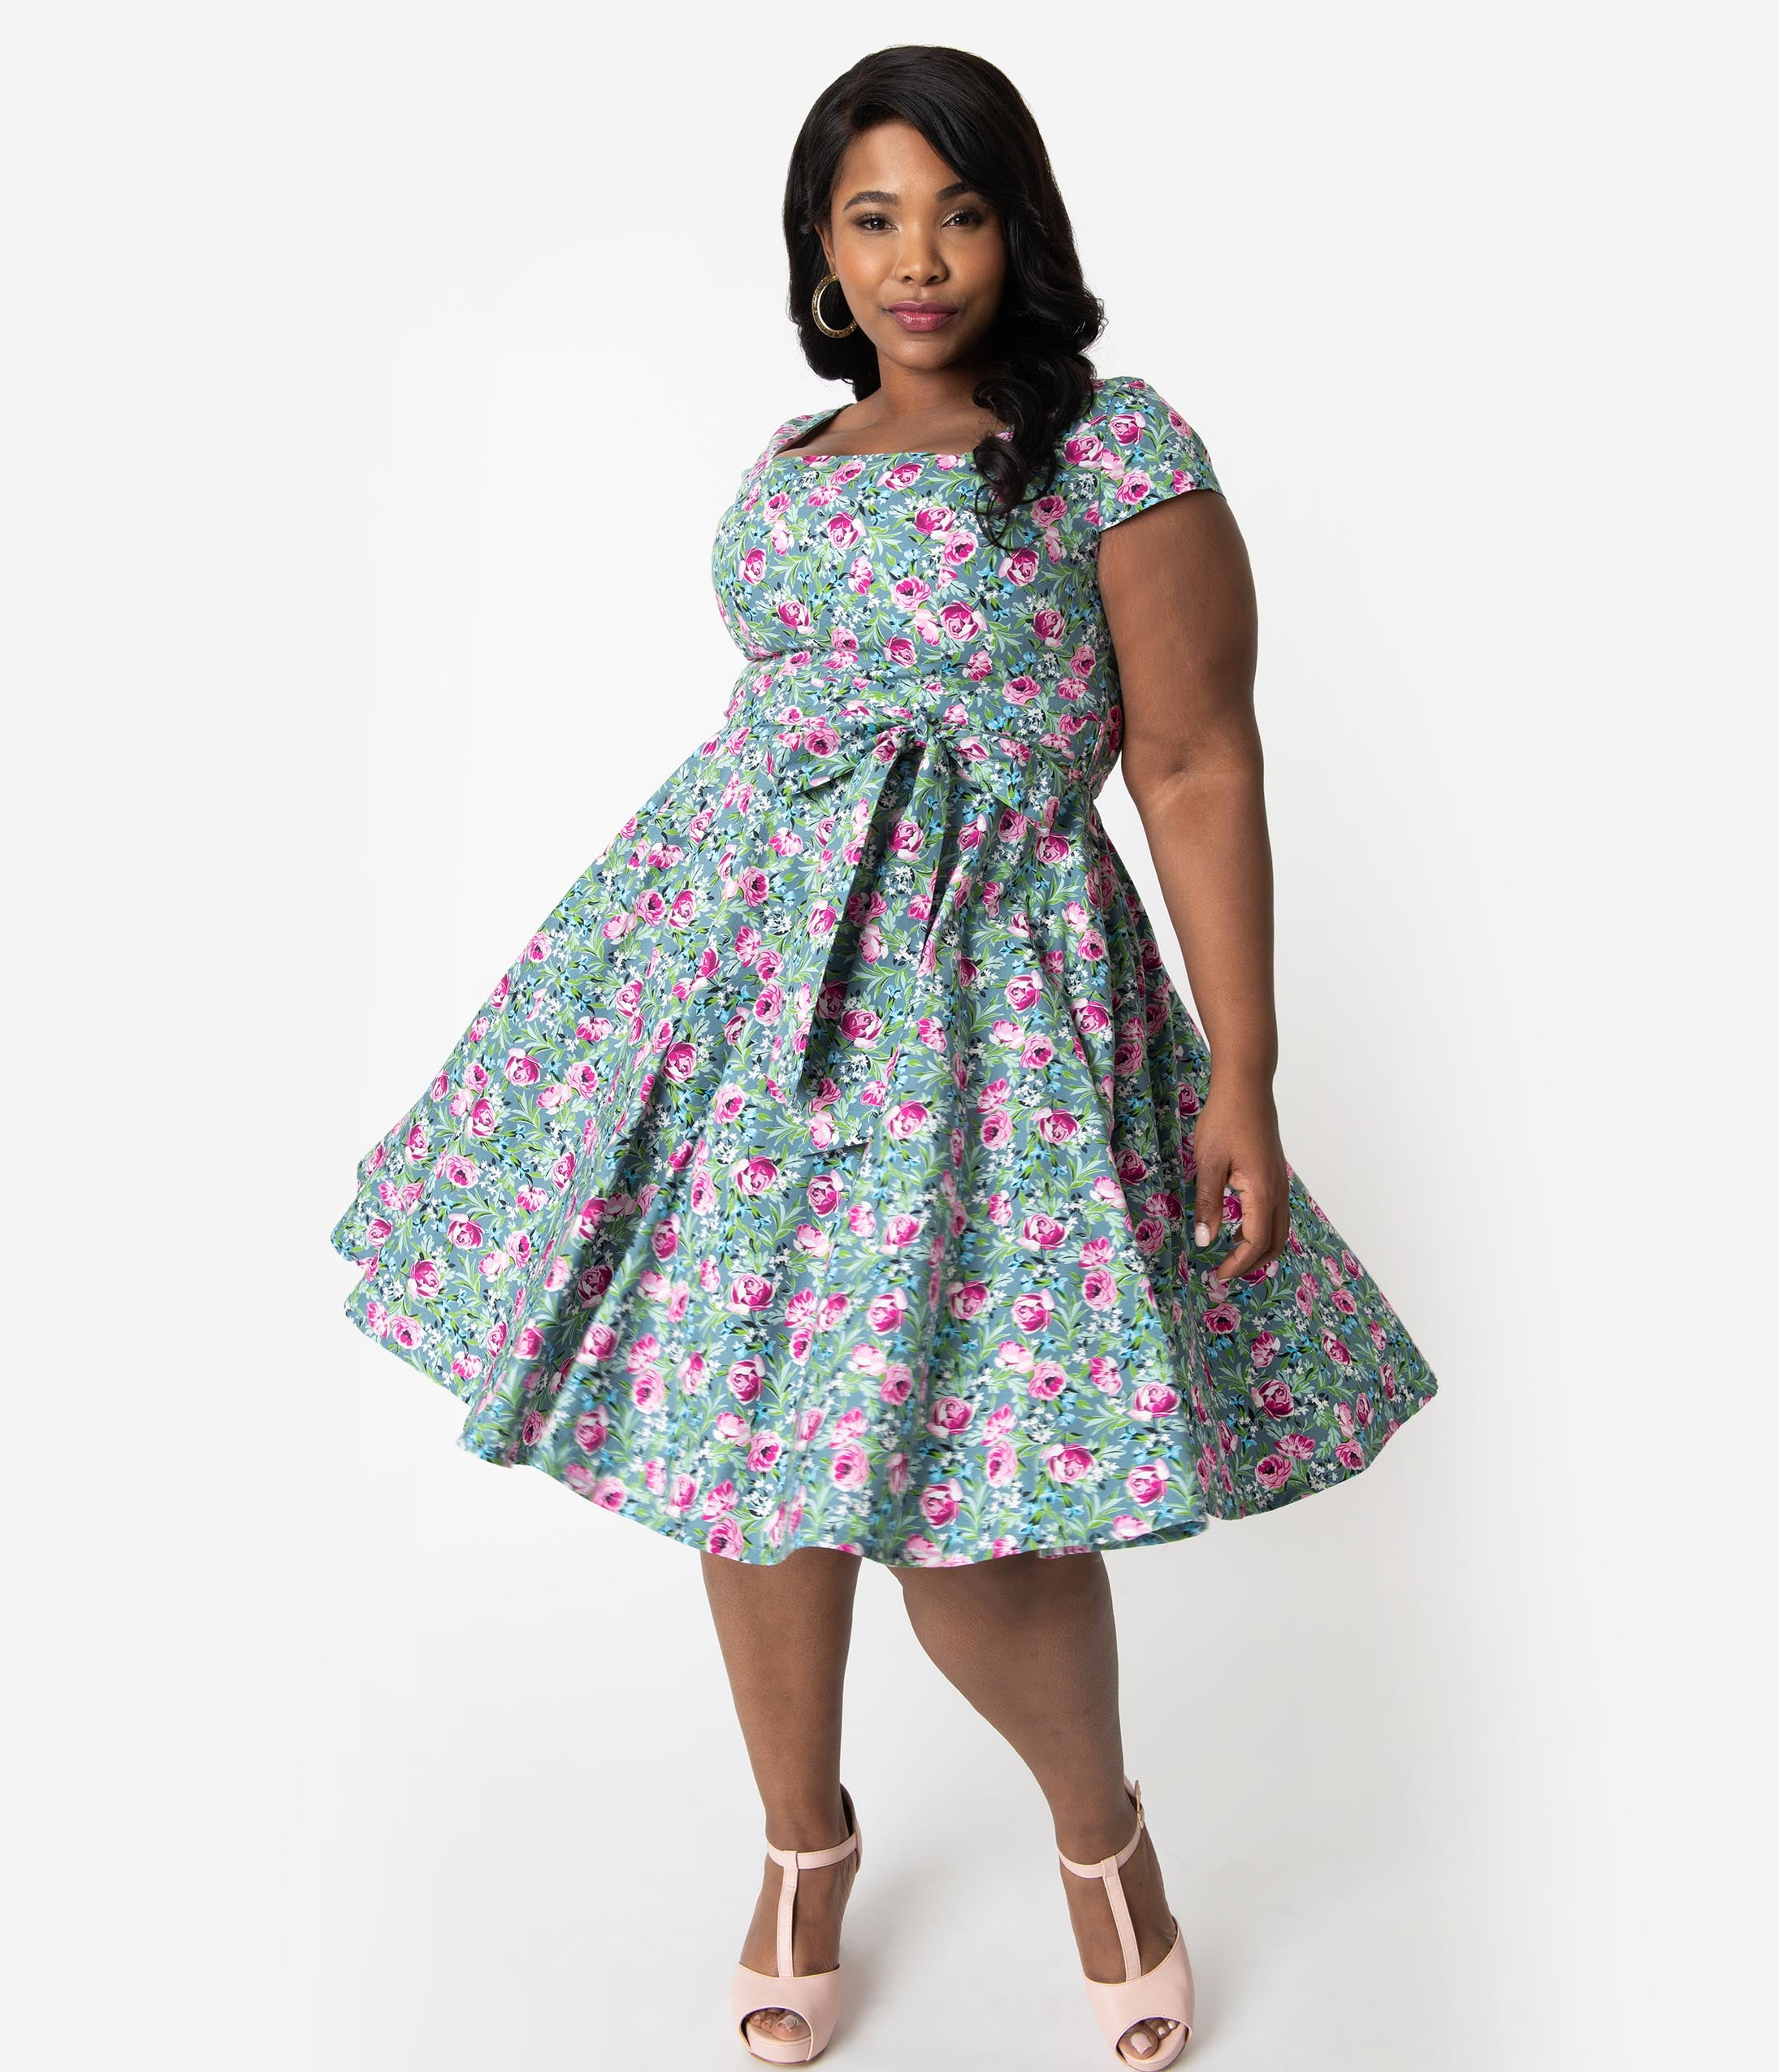 1960s Mad Men Dresses and Clothing Styles Plus Size Retro Style Green  Pink Lovely Floral Print Cap Sleeve Anna Swing Dress $51.00 AT vintagedancer.com